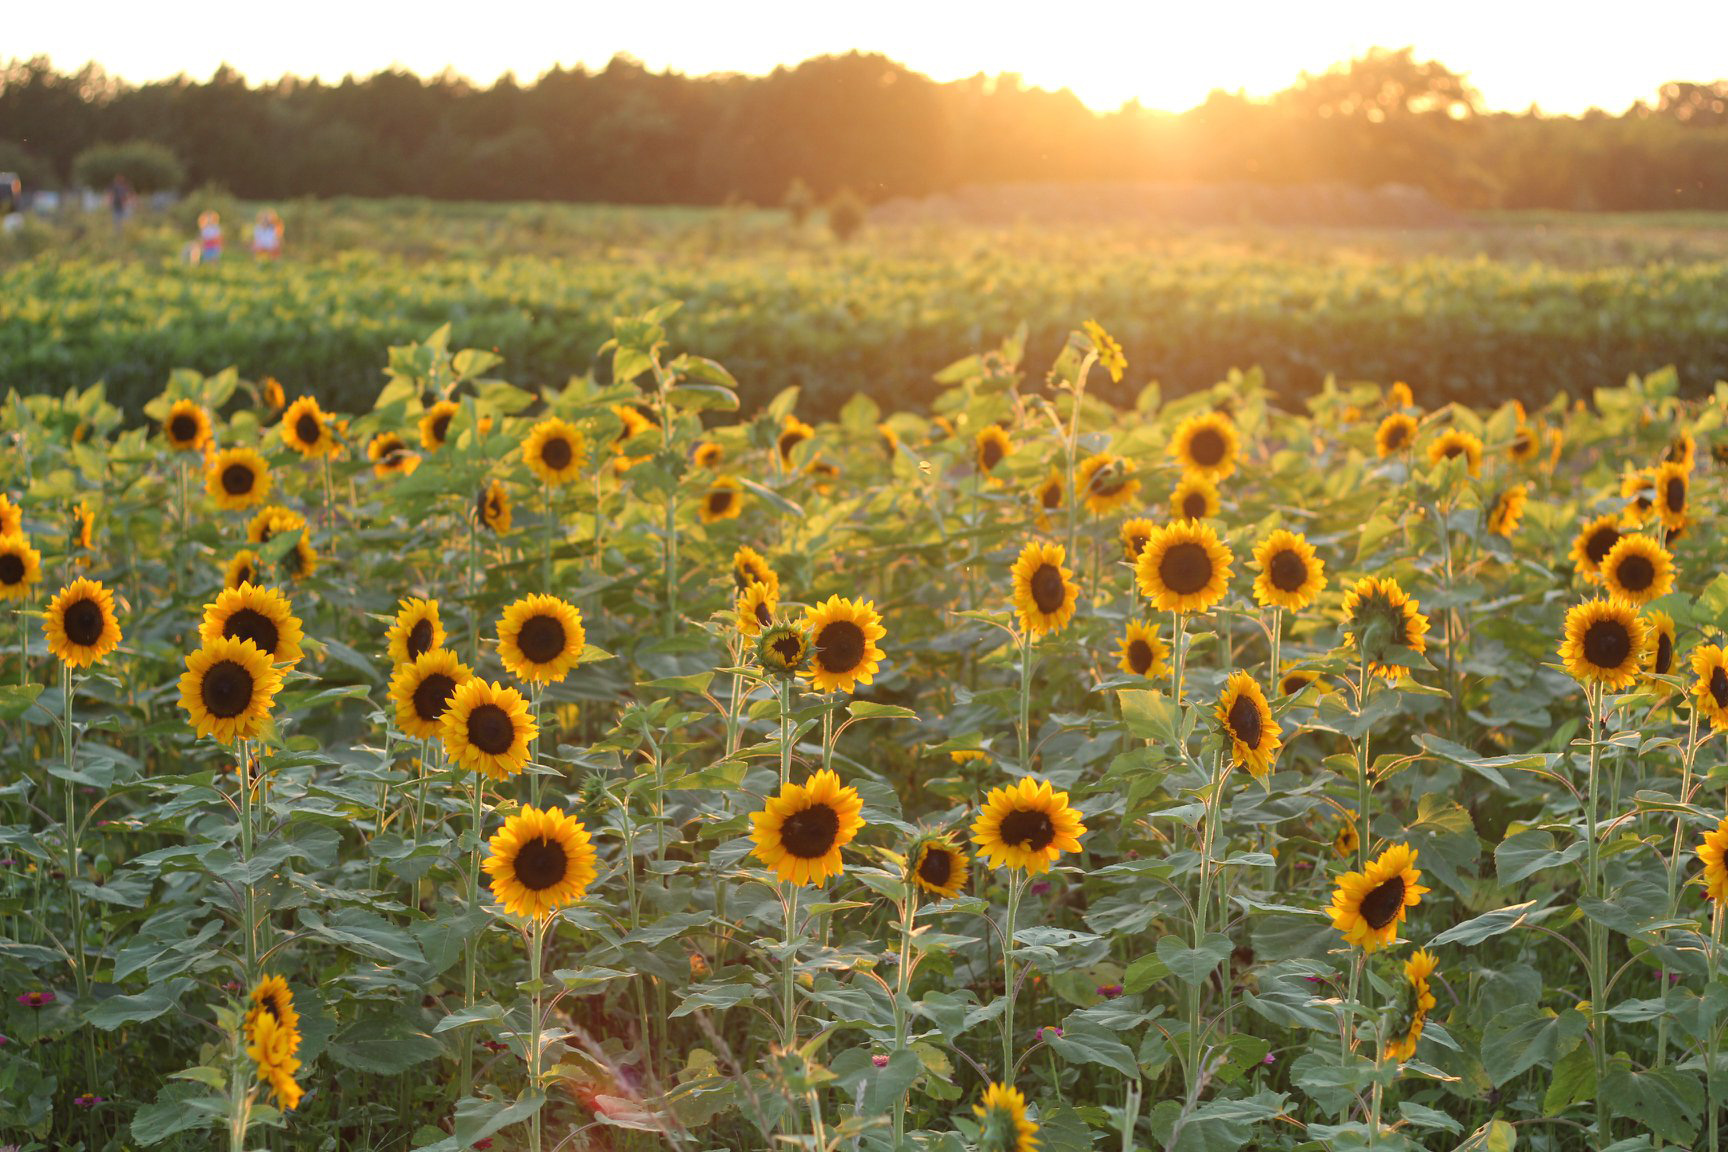 sunflowers in bloom in field at sunset